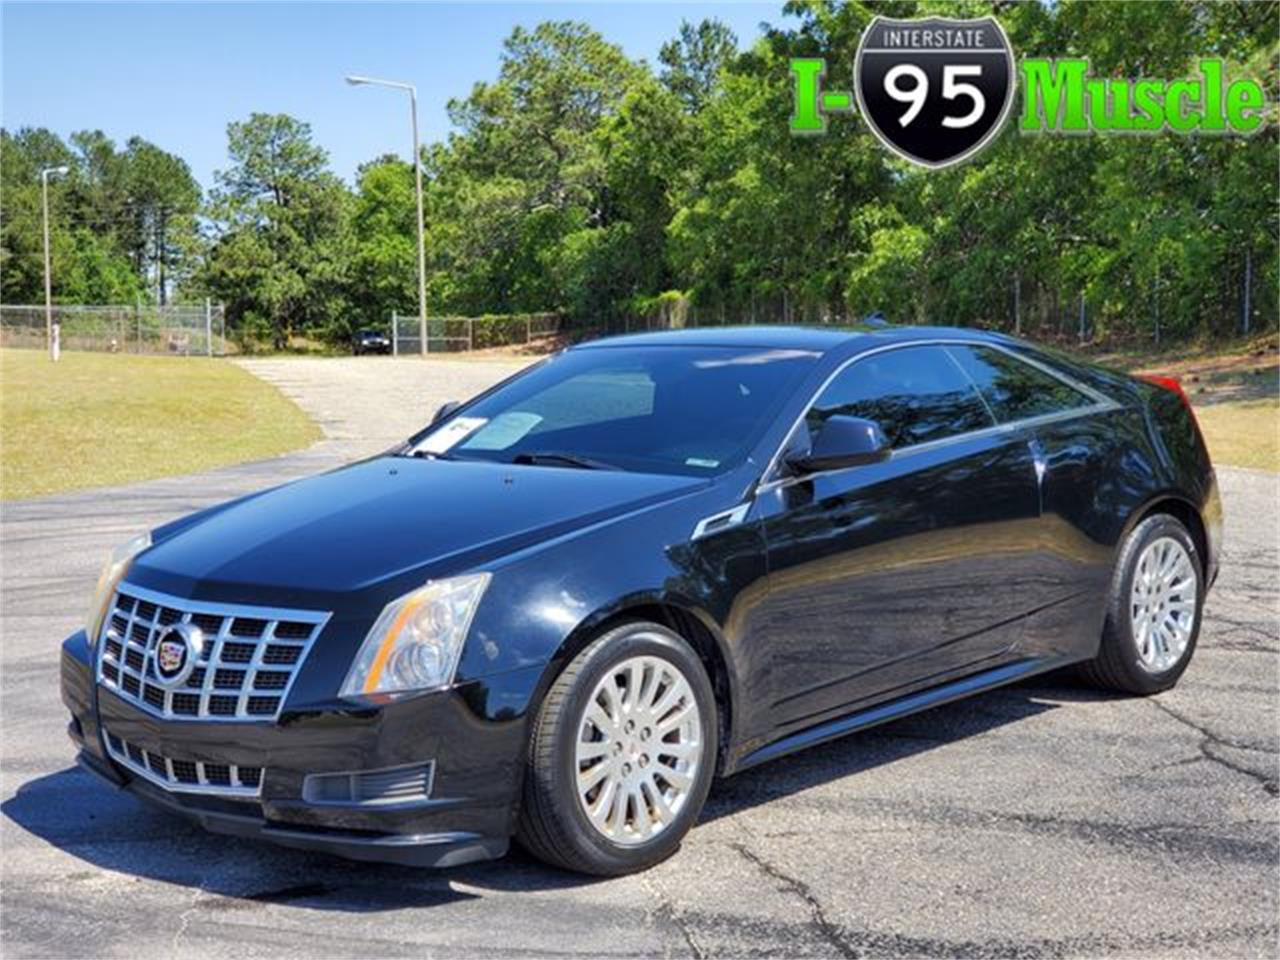 Cts For Sale >> 2014 Cadillac Cts For Sale Classiccars Com Cc 1218515